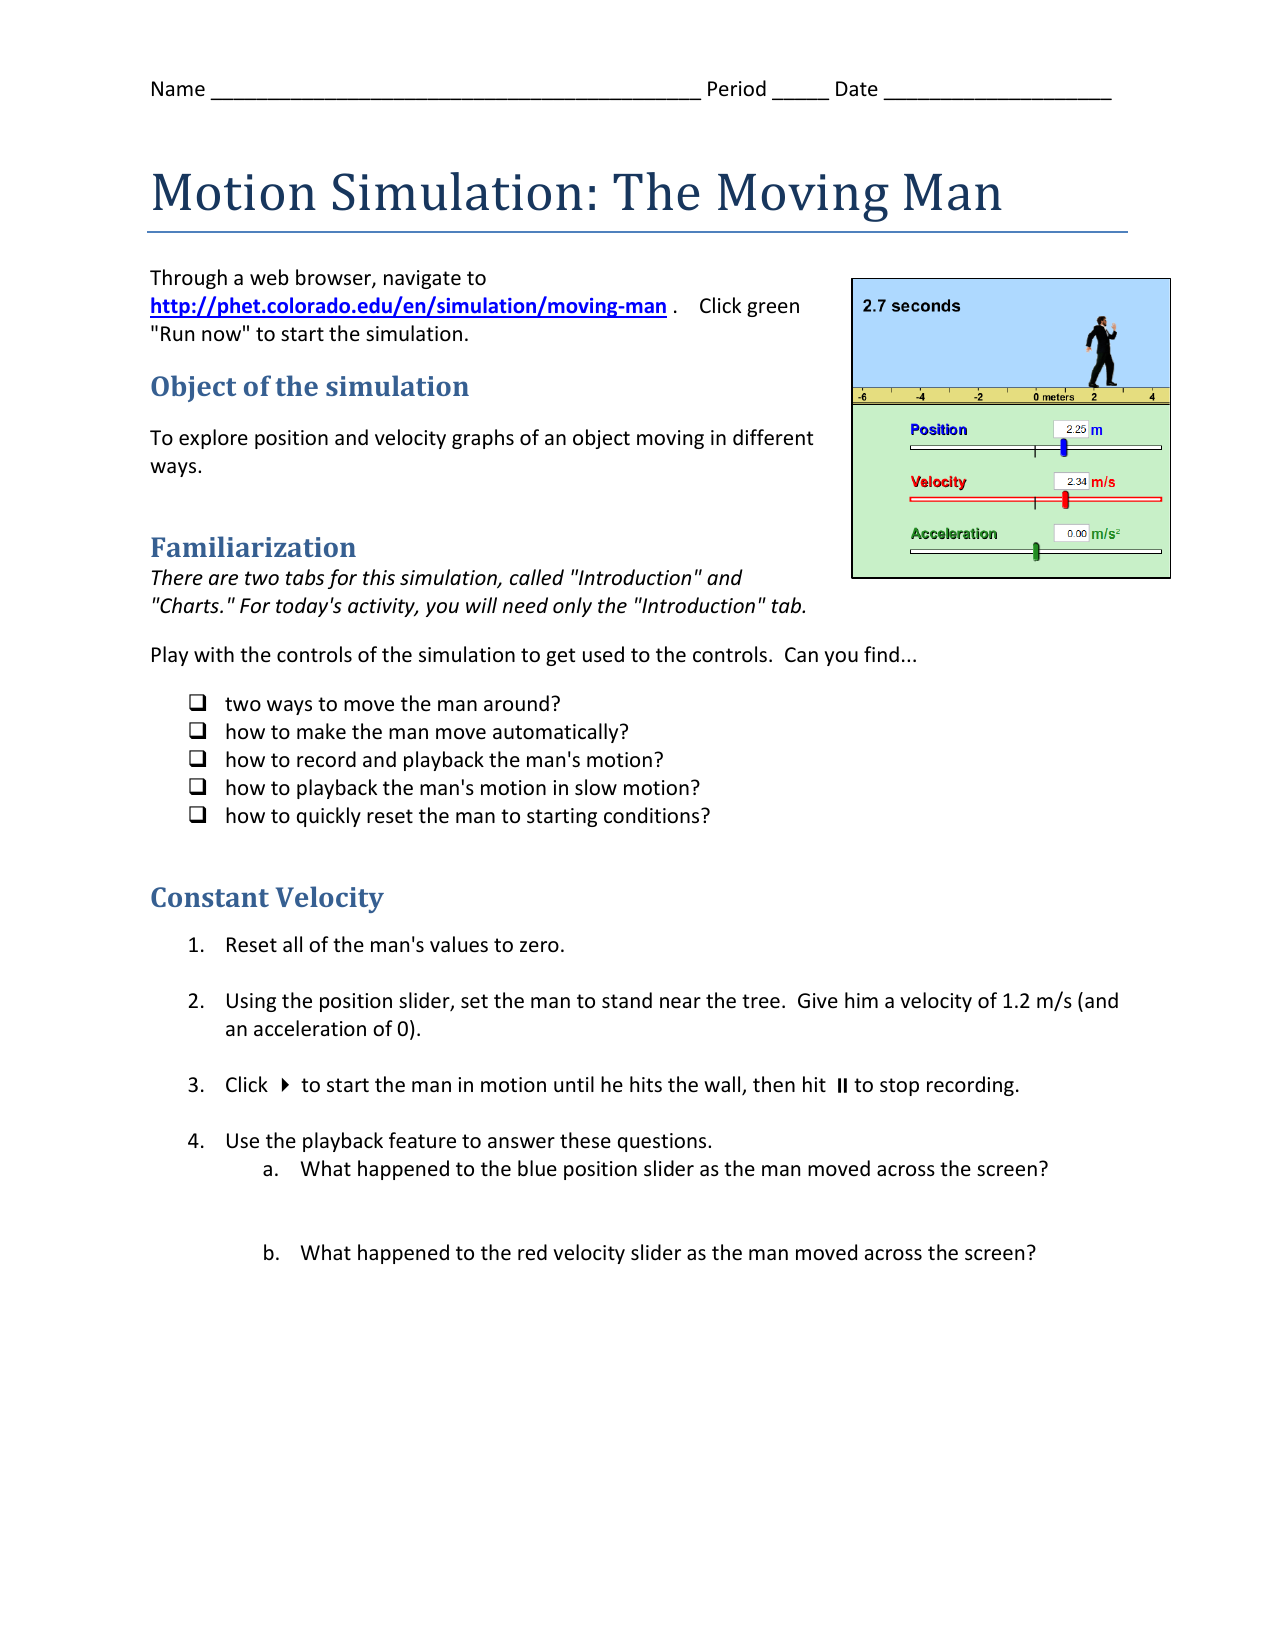 Motion Simulation: The Moving Man